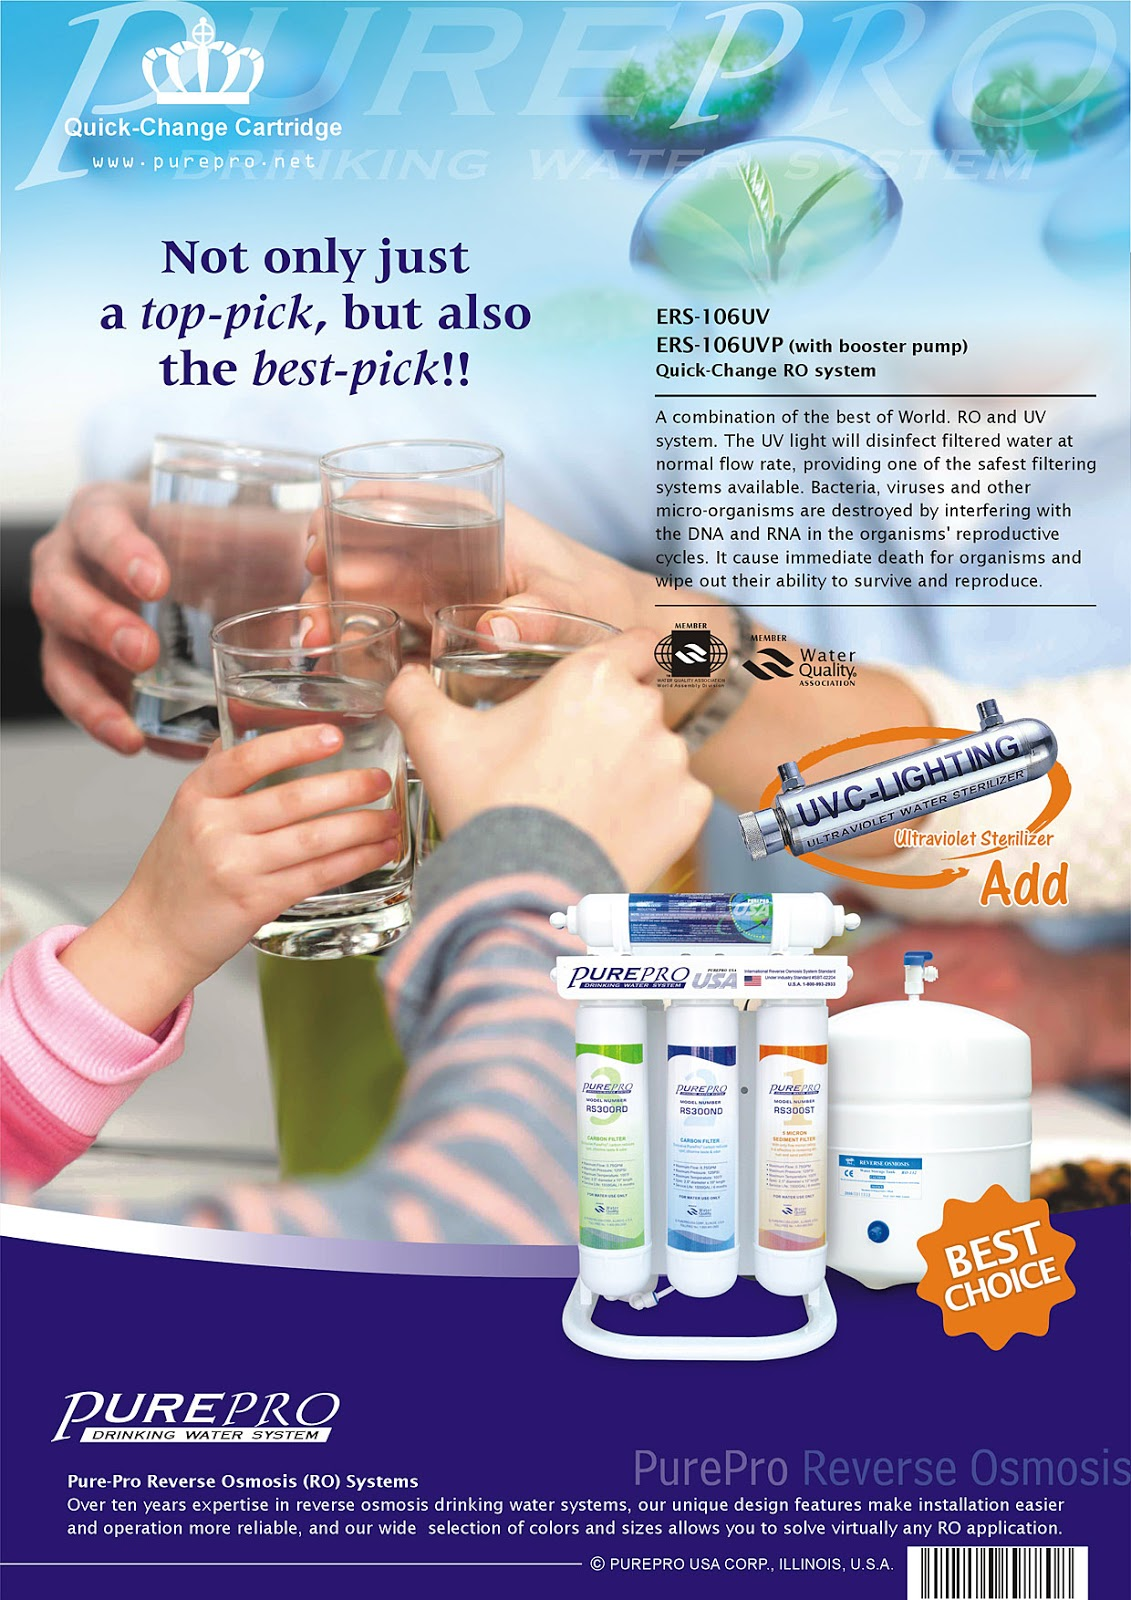 PurePro® USA ERS-106UV-P Quick-Change Reverse Osmosis Water Filter Systems